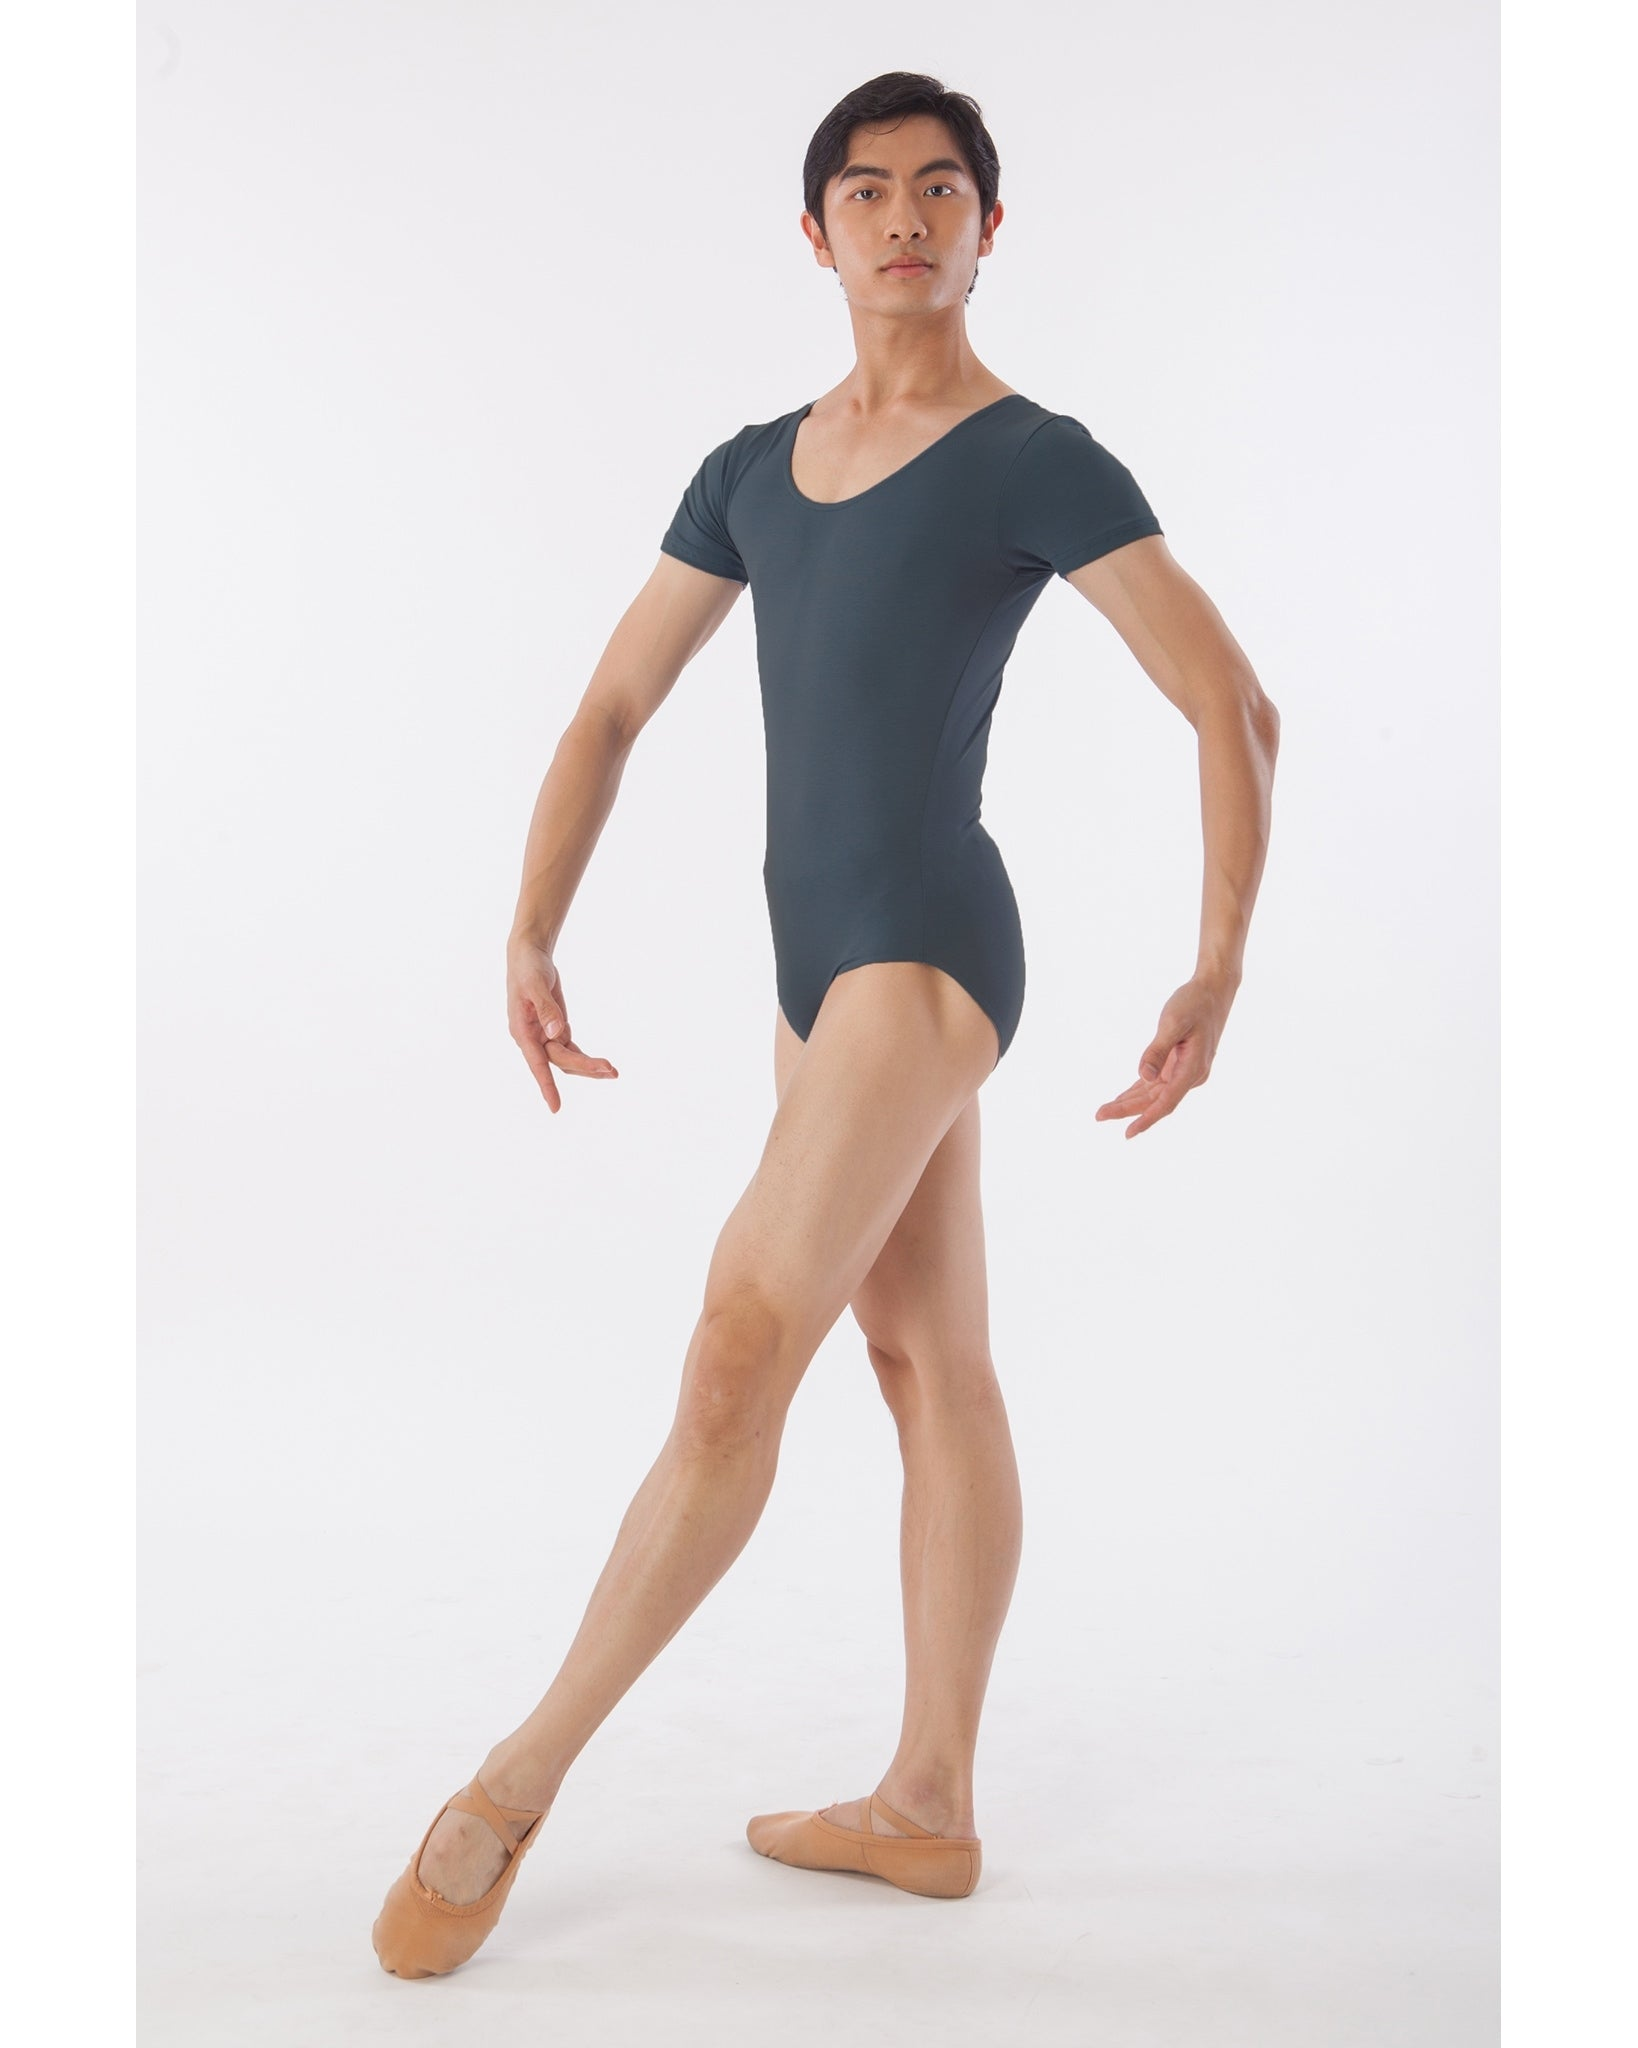 Sonata Short Sleeve Leotard - SML4405 Mens - Dancewear - Men's & Boys - Dancewear Centre Canada